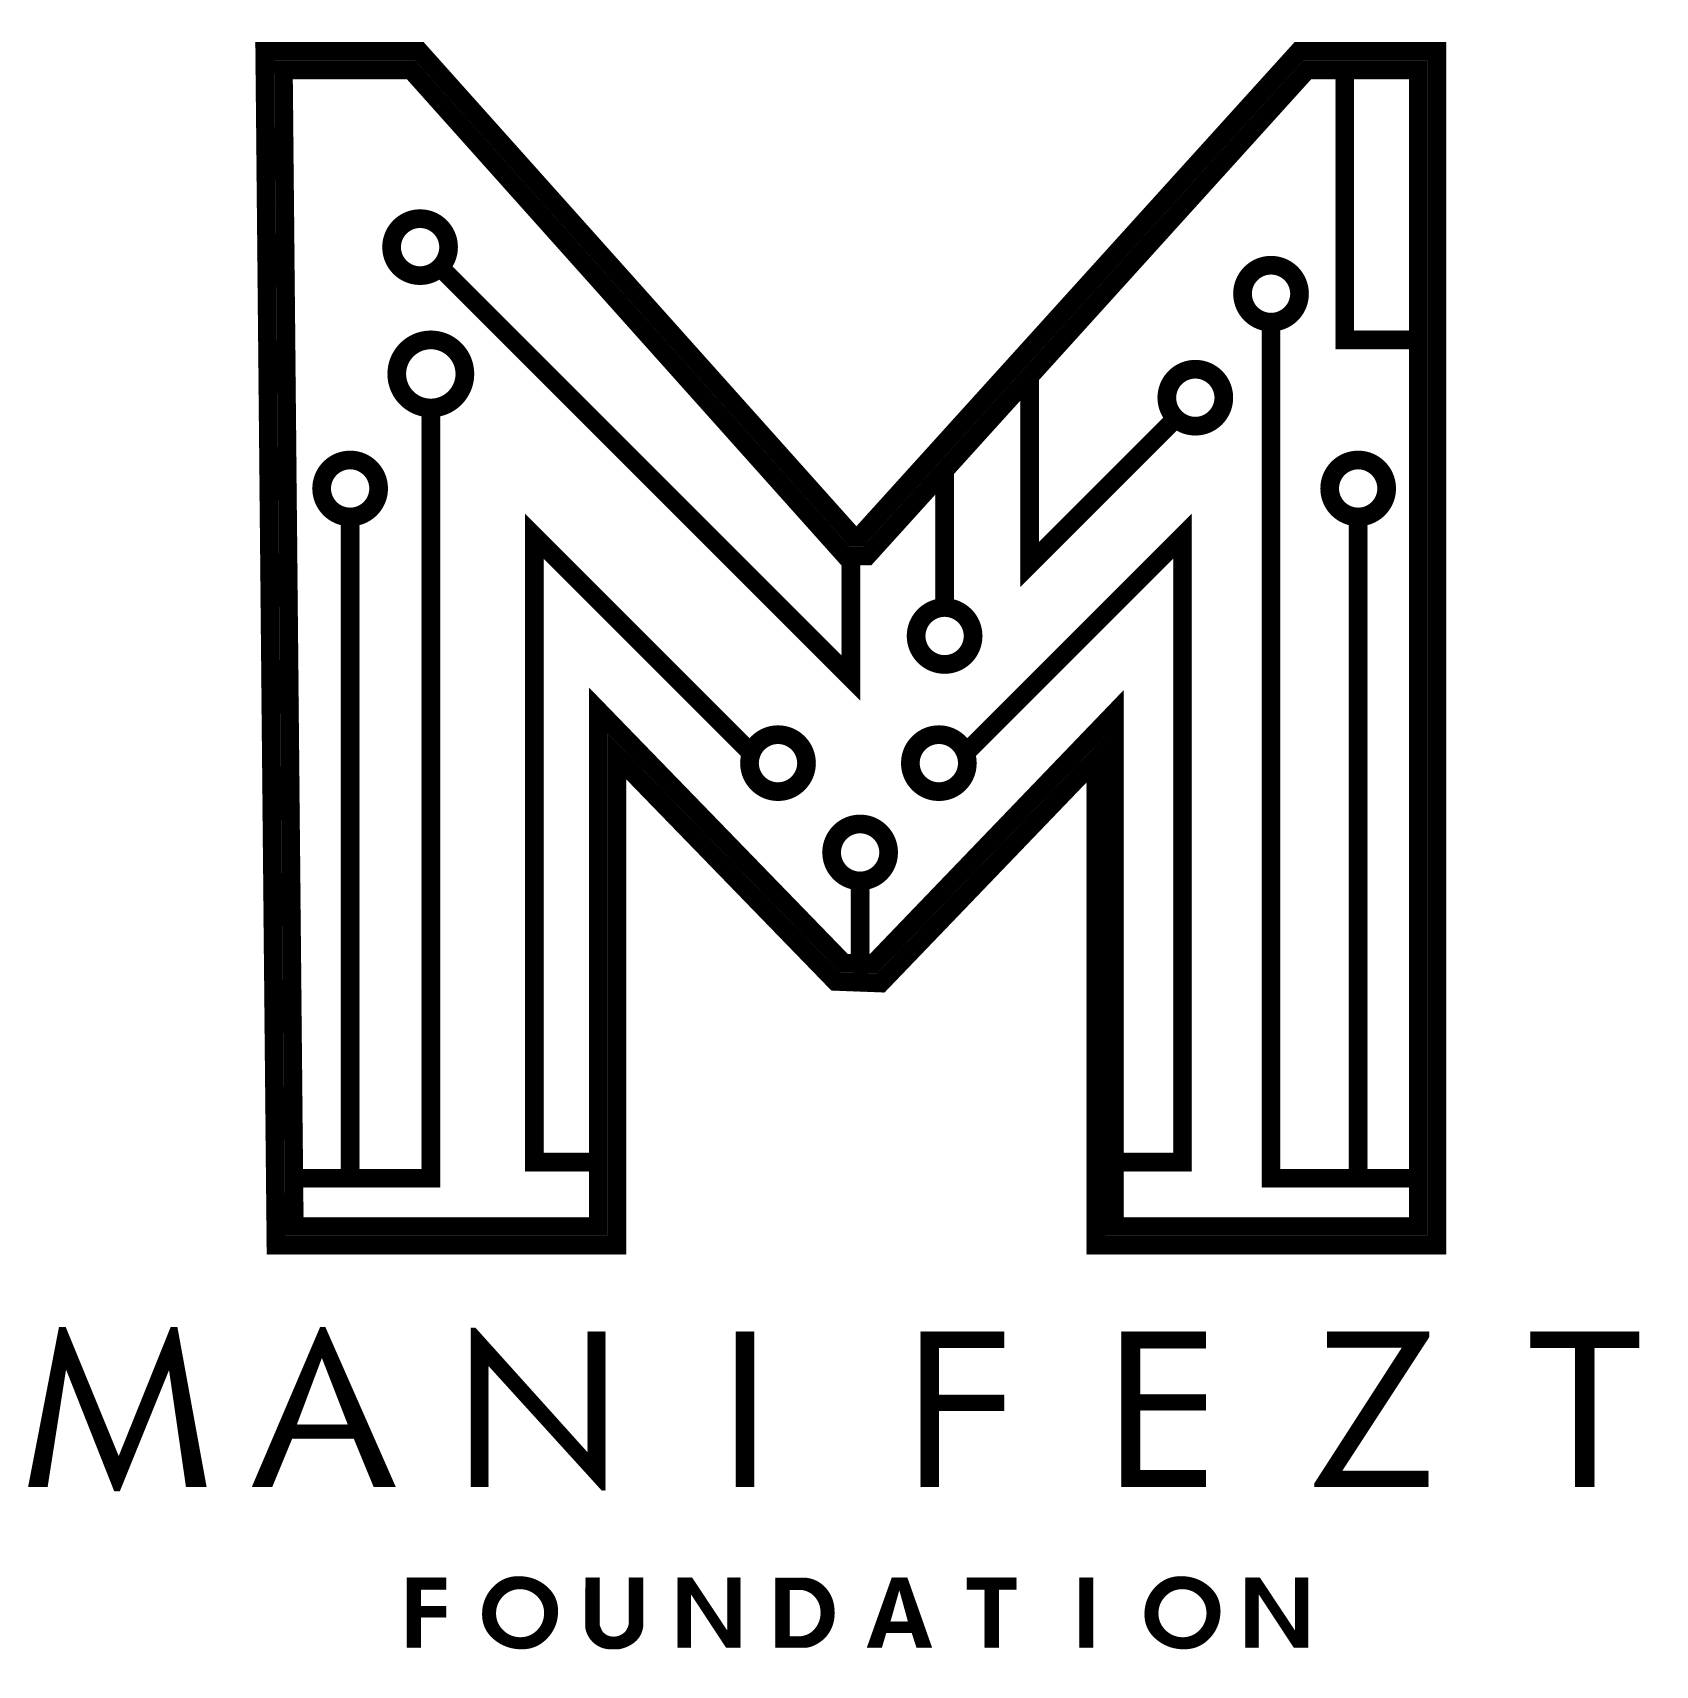 previous work - Logo Manifezt Foundation - Previous Work